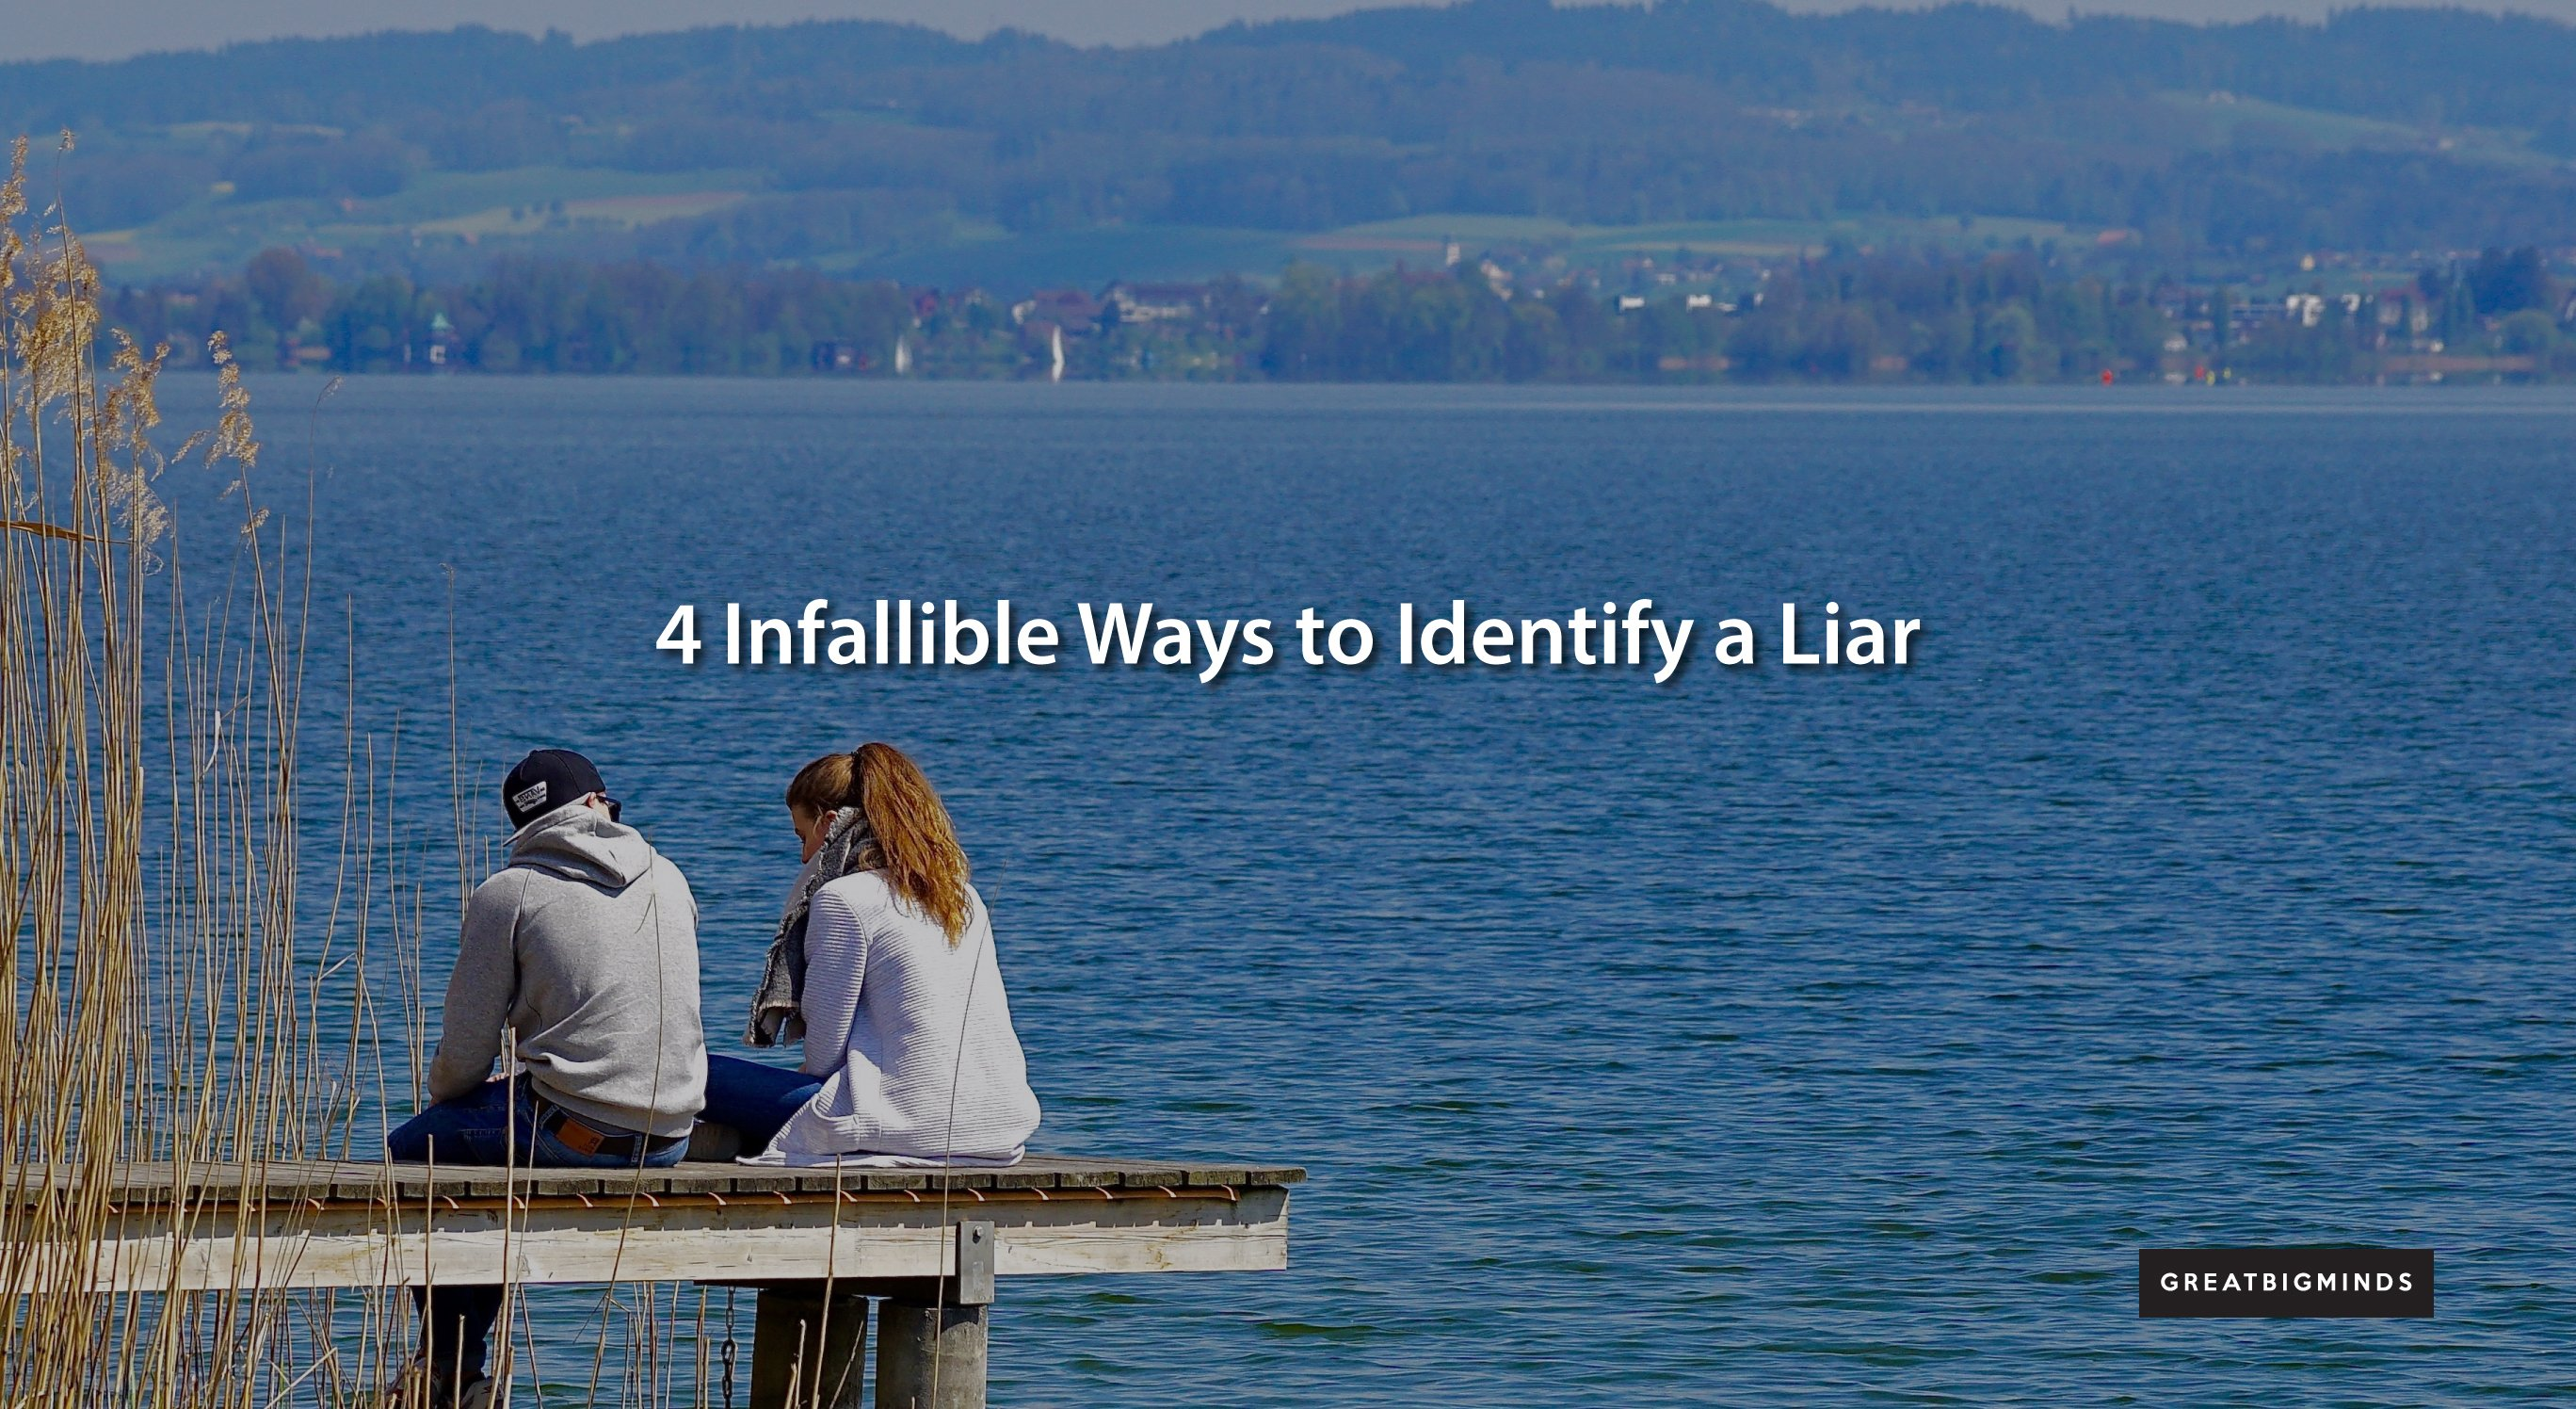 4-Ways-to-Identify-a-Liar